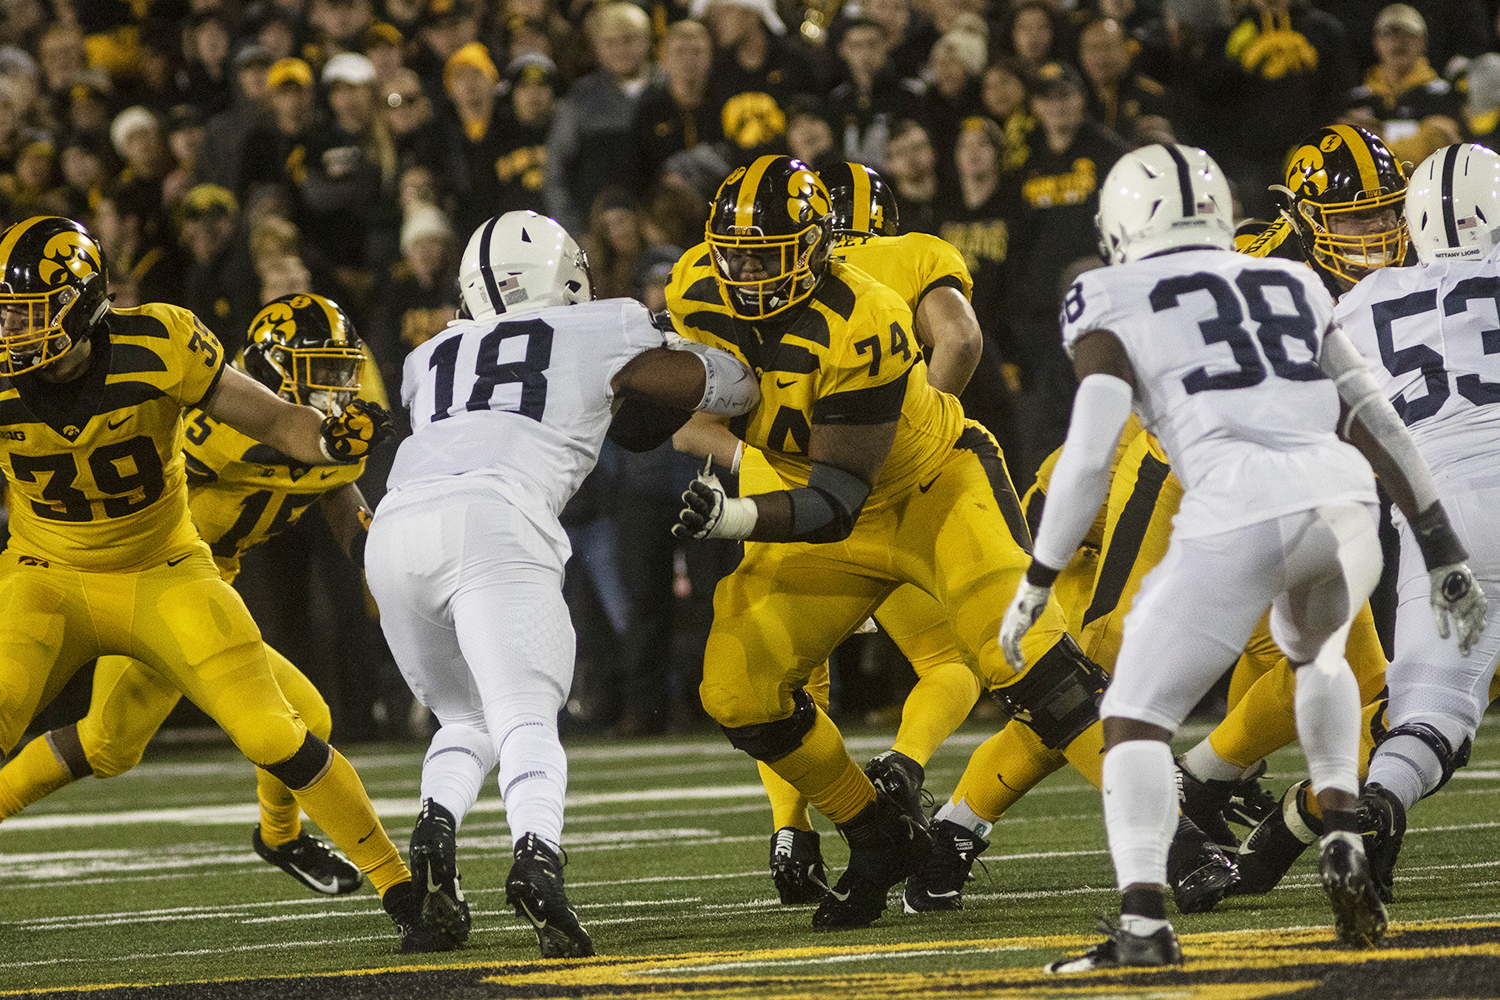 Iowa OL Tristan Wirfs defends QB Nate Stanley during the Iowa football vs. Penn State game in Kinnick Stadium on Saturday, Oct. 12, 2019. The Nittany Lions defeated the Hawkeyes 17-12.